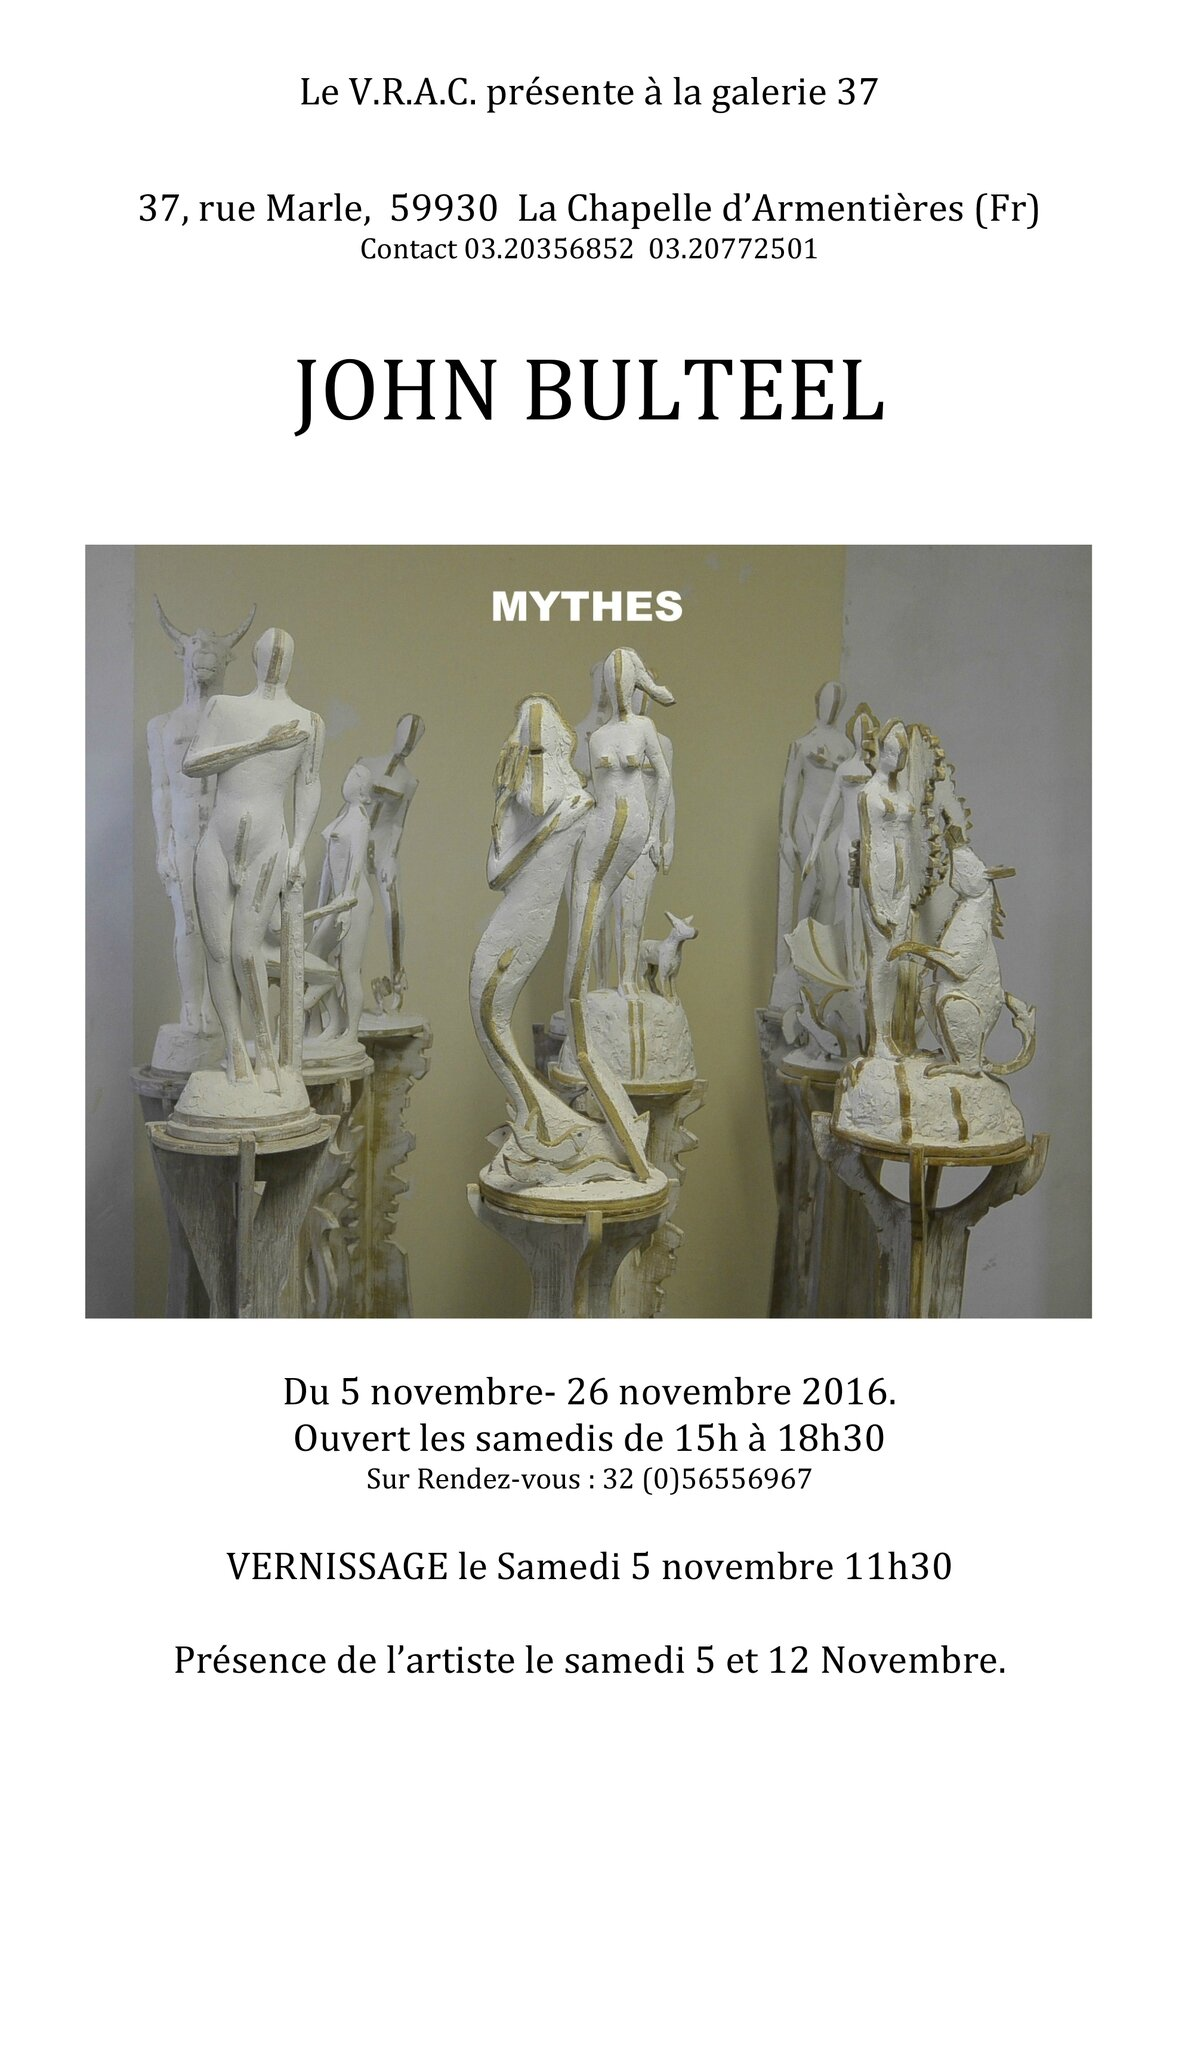 MYTHES par John Bulteel - Vernissage le 5 novembre 2016